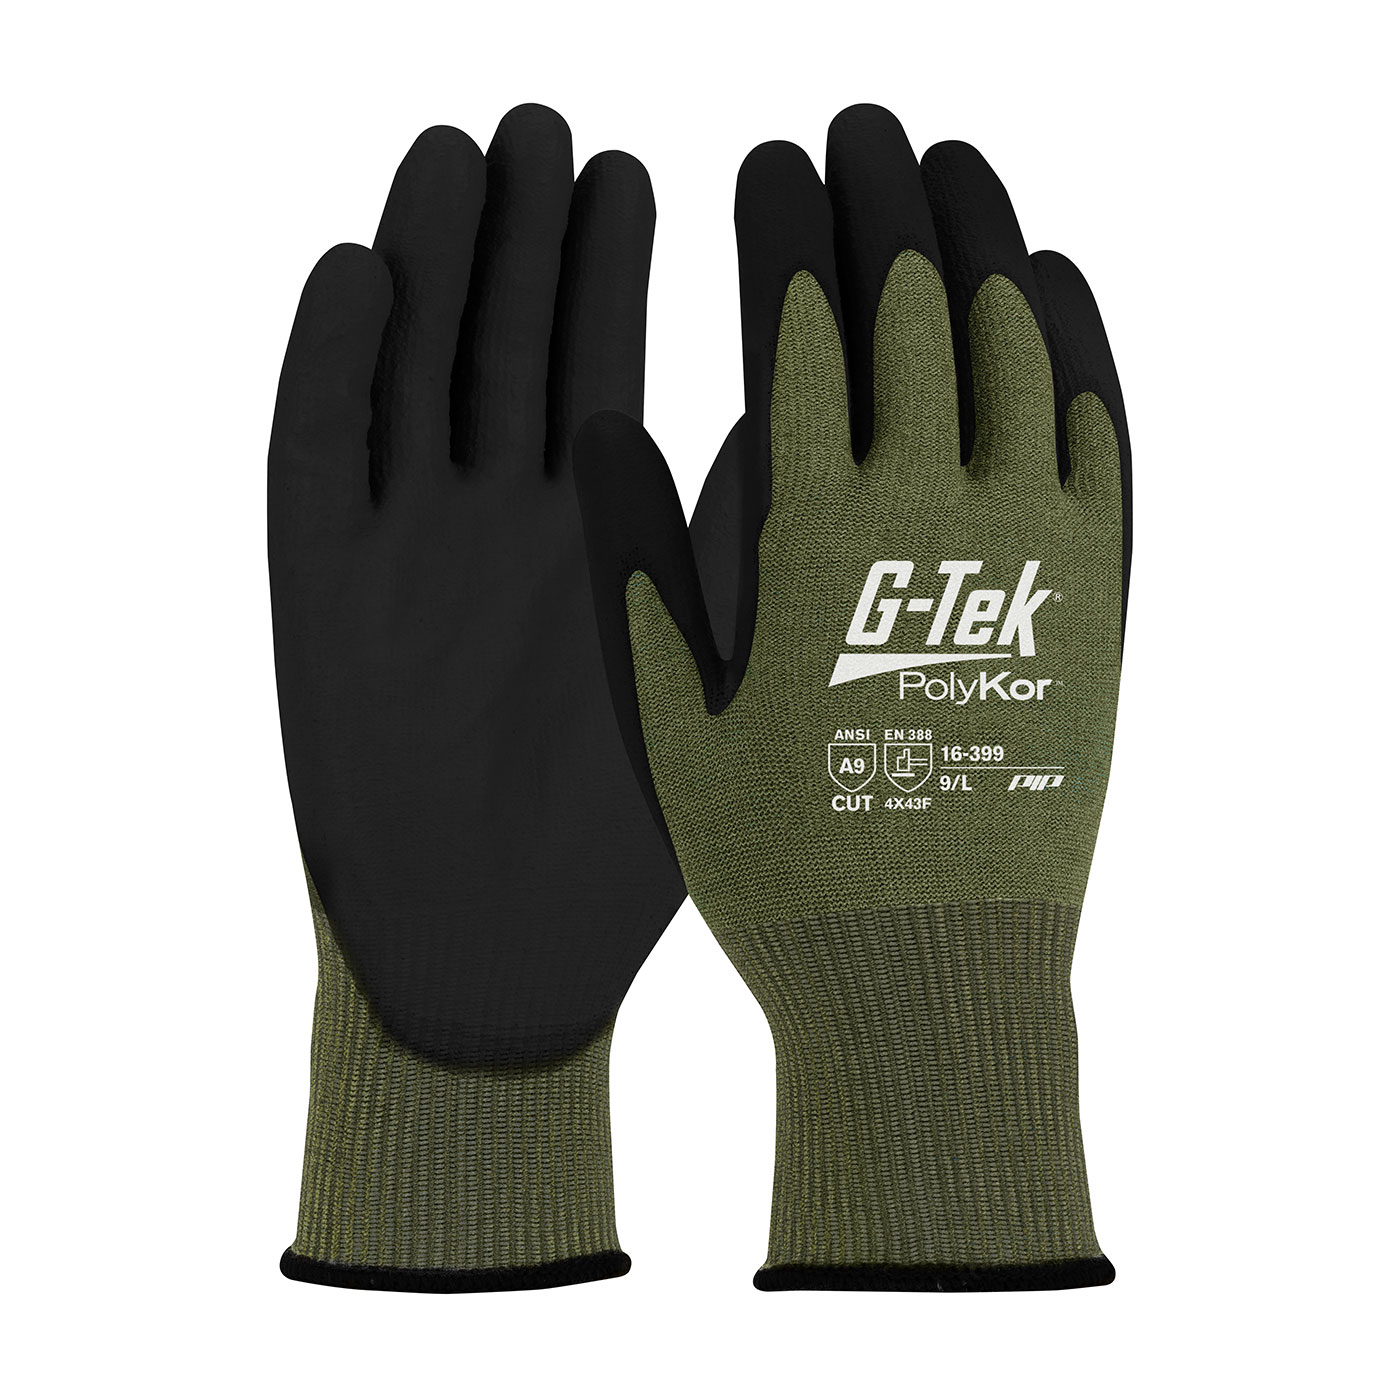 16-399 PIP® G-Tek® PolyKor® X7™ Seamless Knit X7™ Blended Glove with NeoFoam® Coated MicroSurface Grip on Palm & Fingers - Touchscreen Compatible